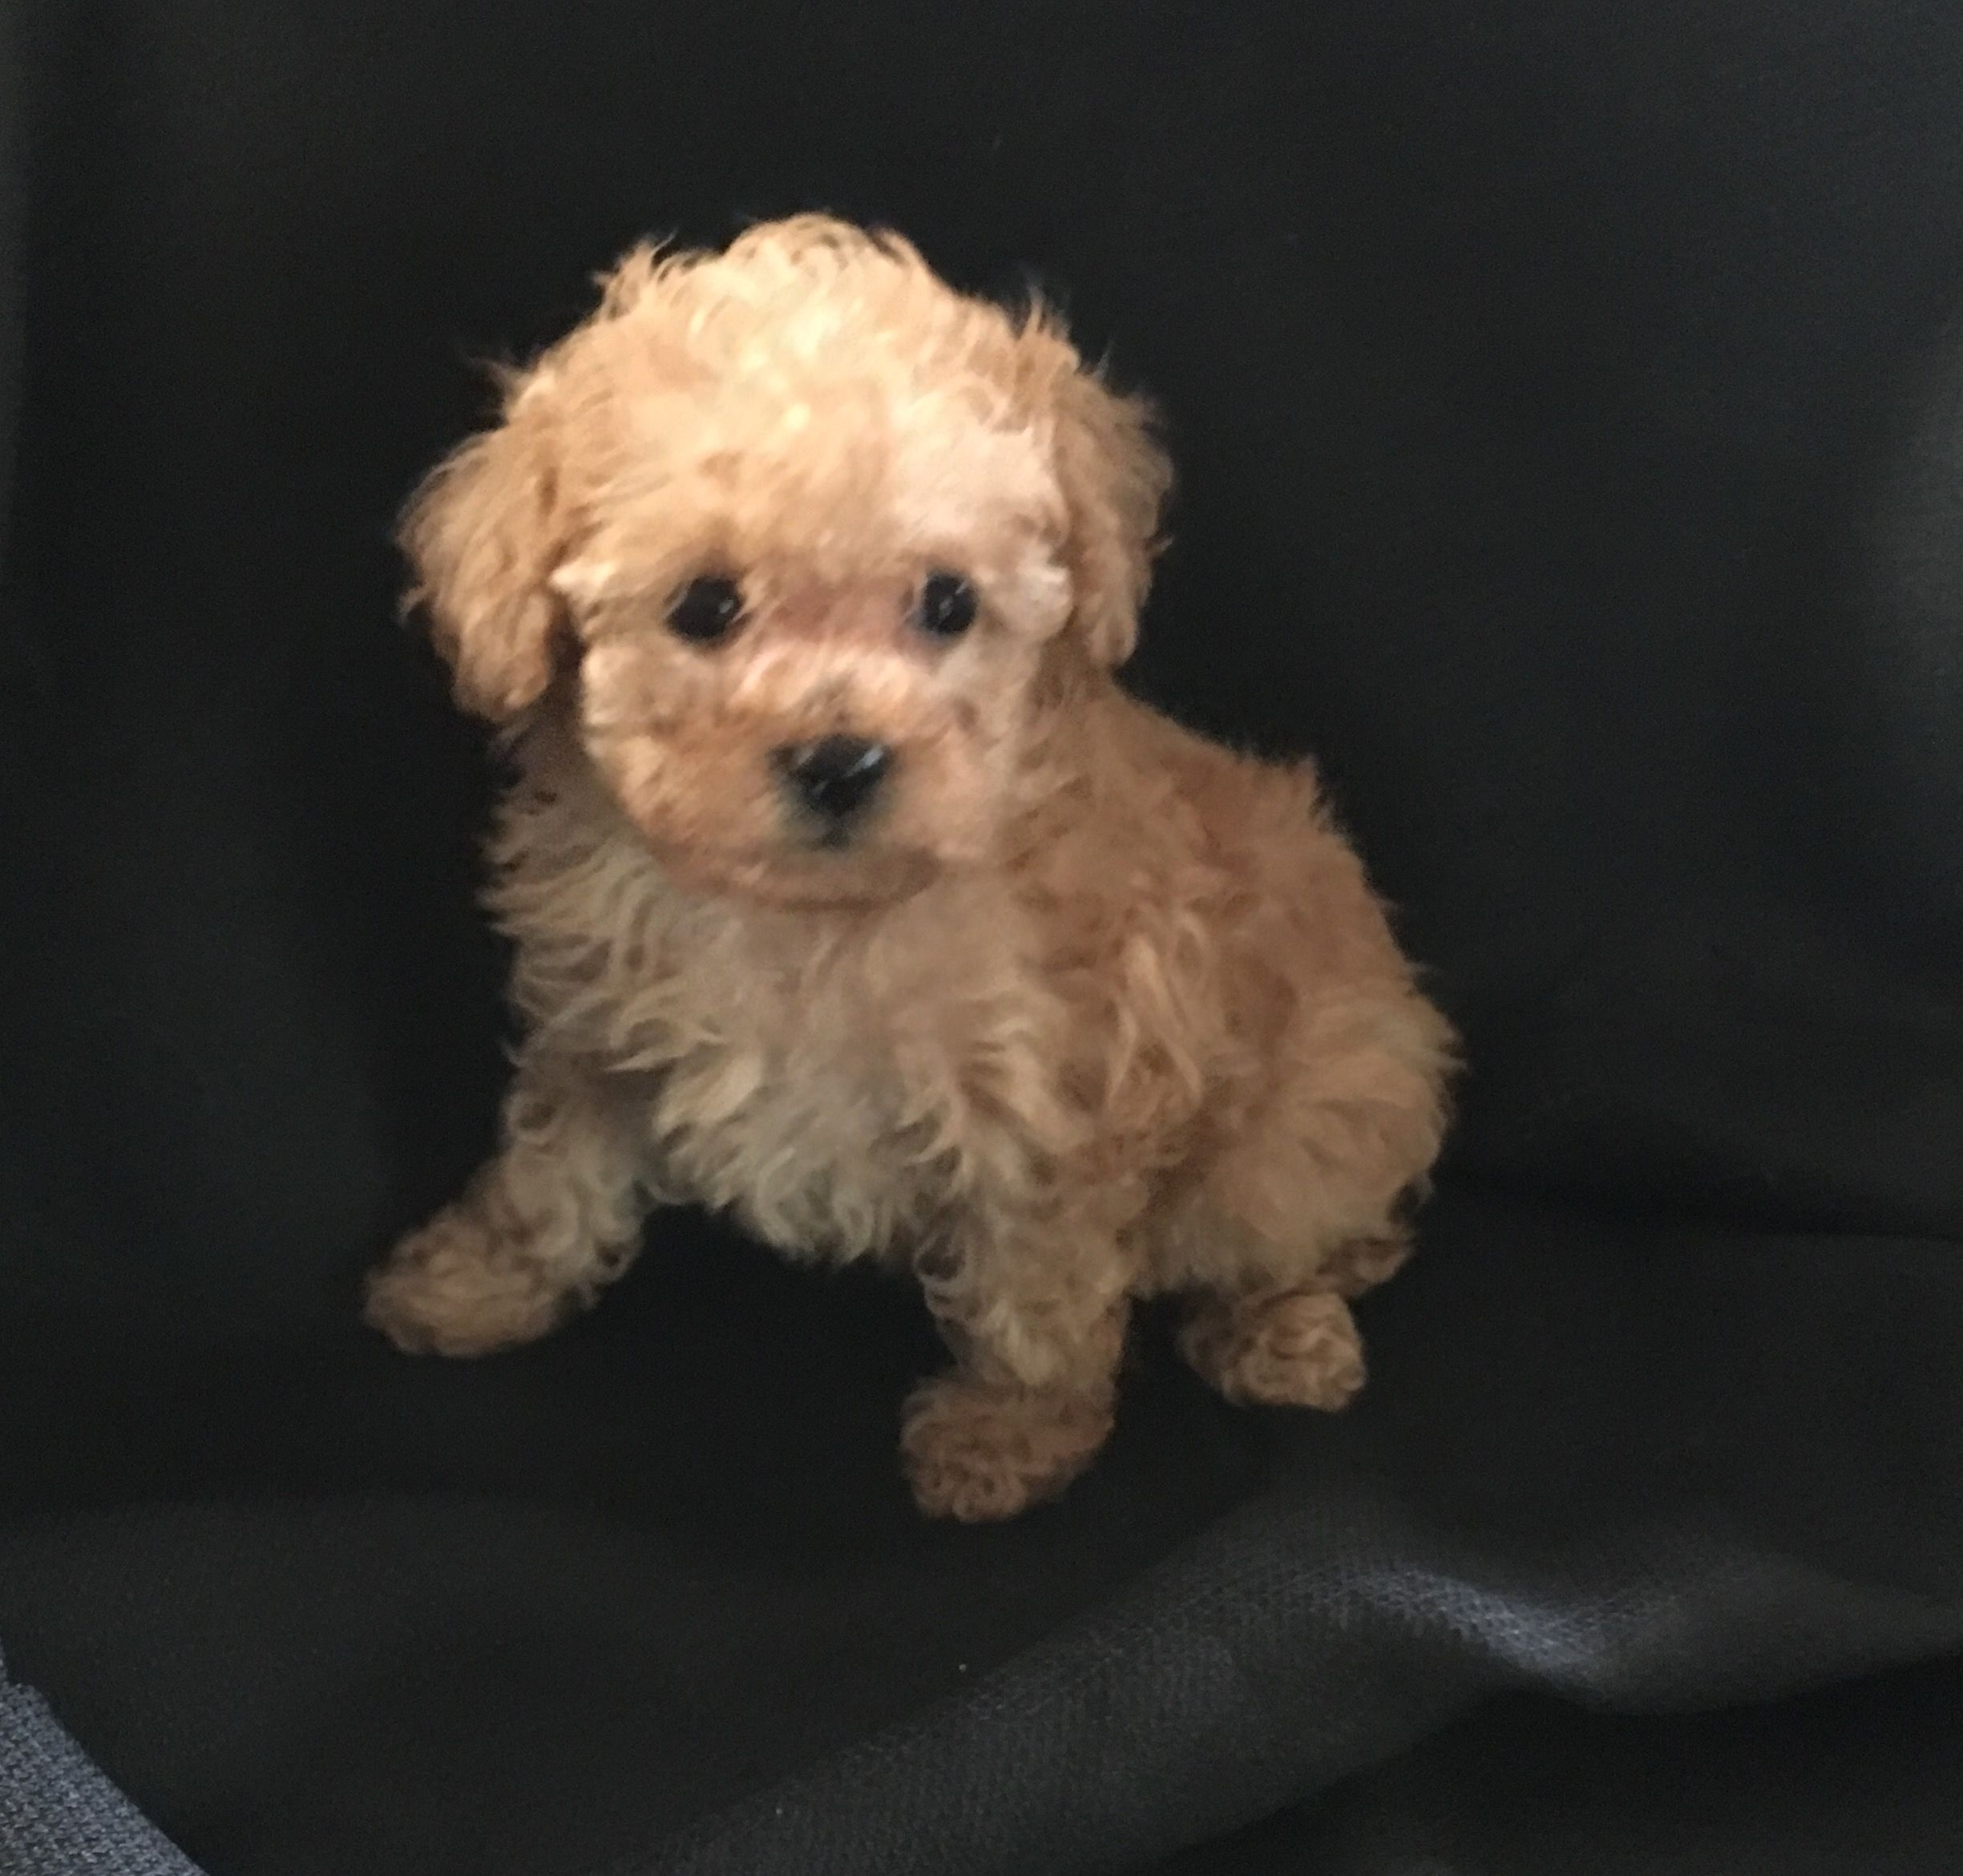 Designer And Mix Puppies Morkies Maltipoos Red Maltipoos Yorkshire Terrier Shih Tzu Havanese Toy And Teacup Poo Poodle French Bulldog Puppies Yorkie Poo